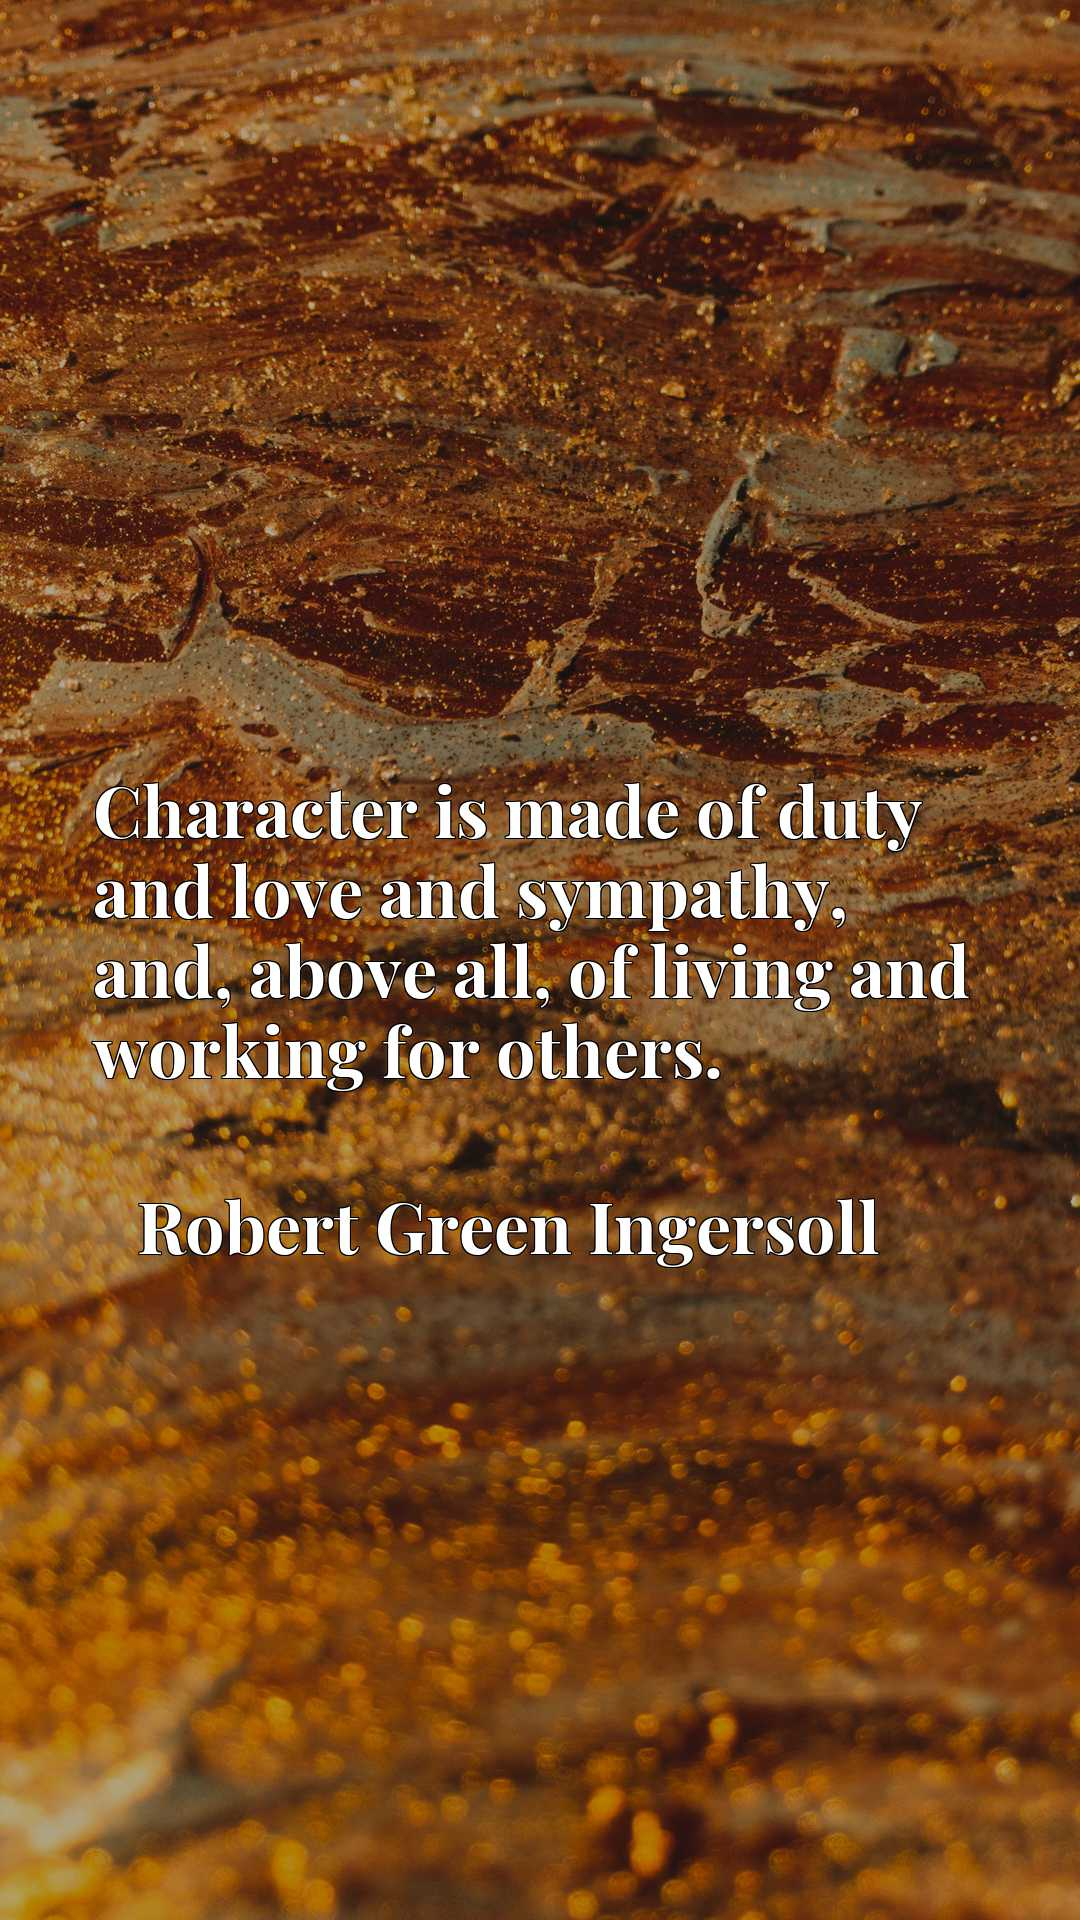 Quote Picture :Character is made of duty and love and sympathy, and, above all, of living and working for others.